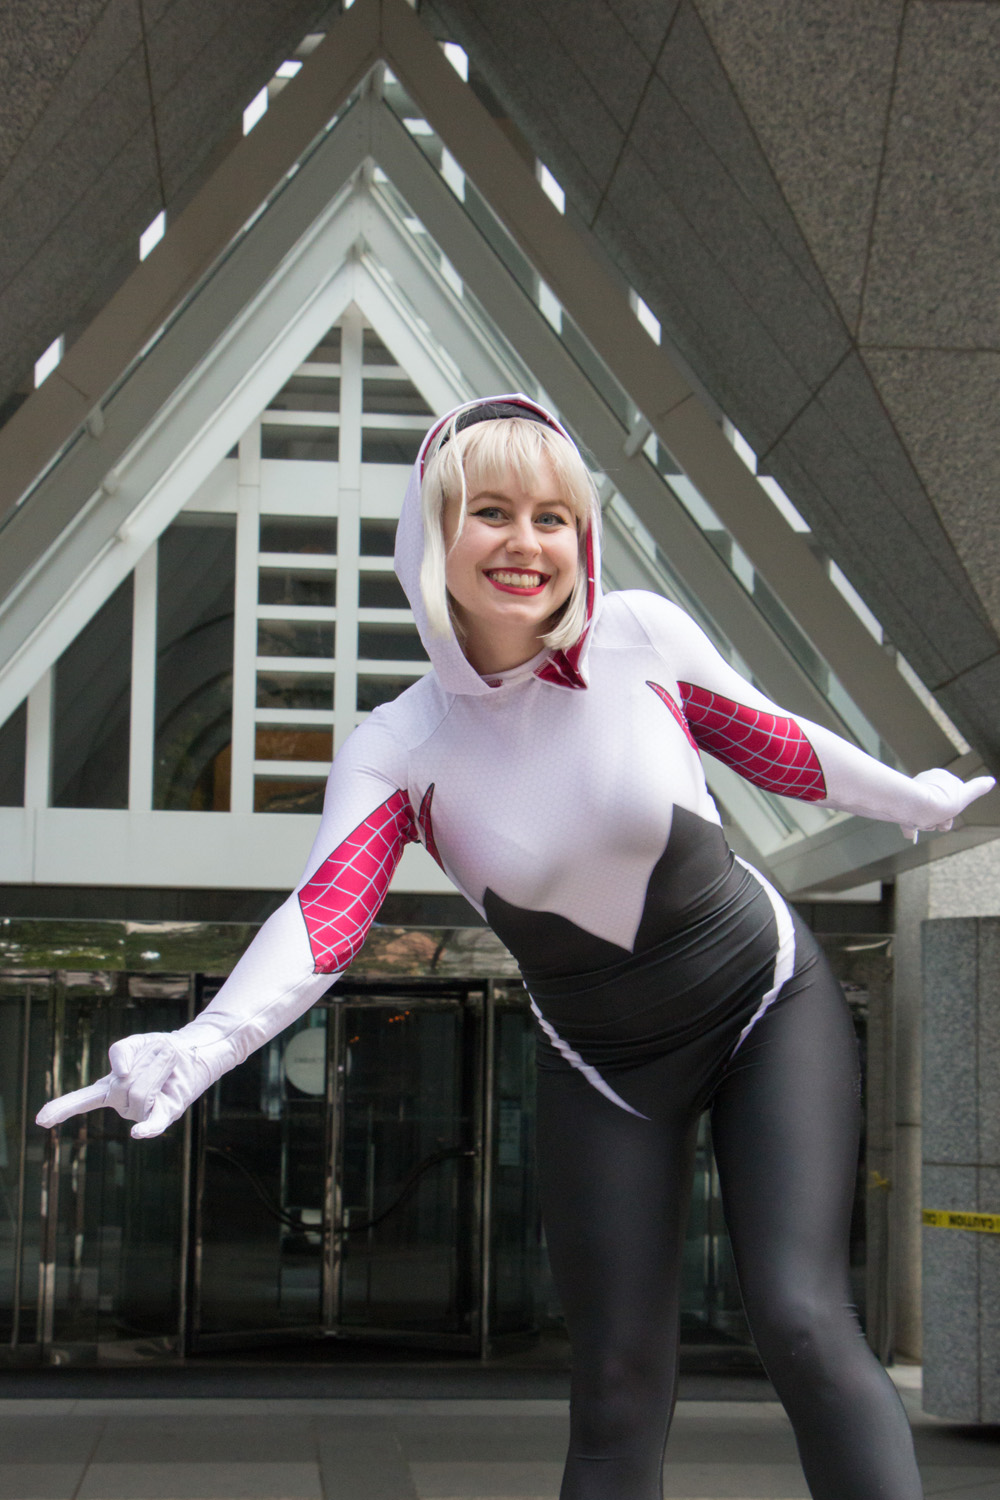 spider-gwen costume with real blonde hair